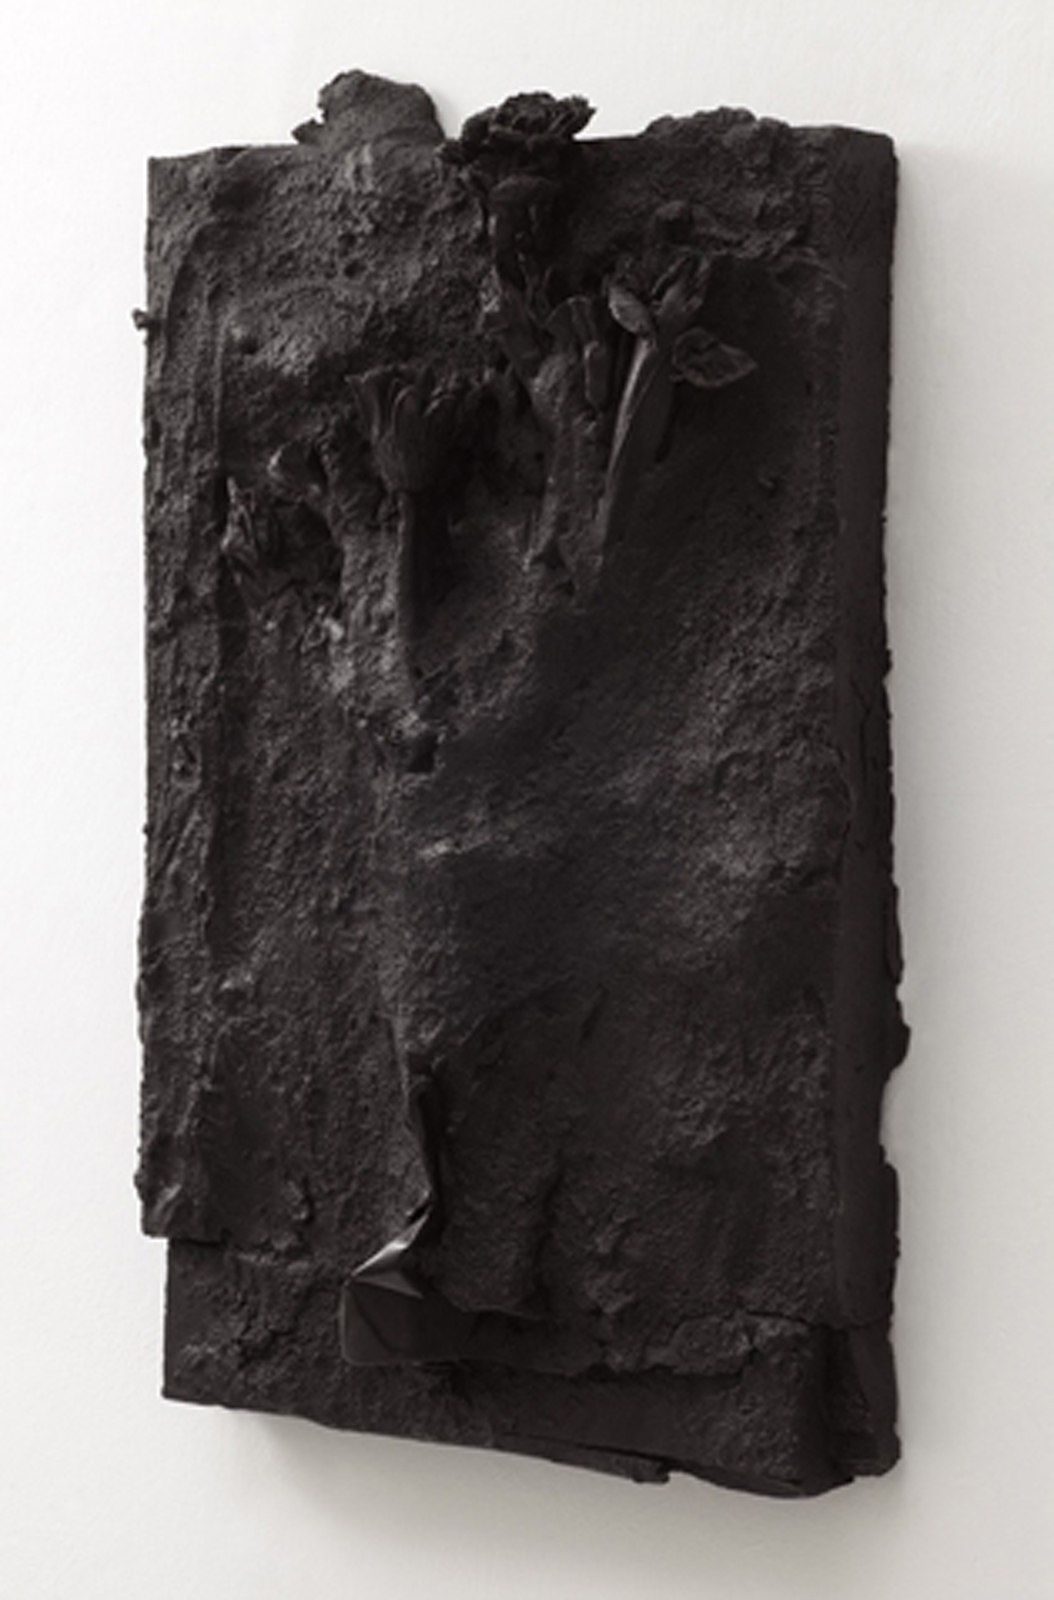 Michael Boffey | Dreaming in Braille | 2013 | Bronze | 55x34cm